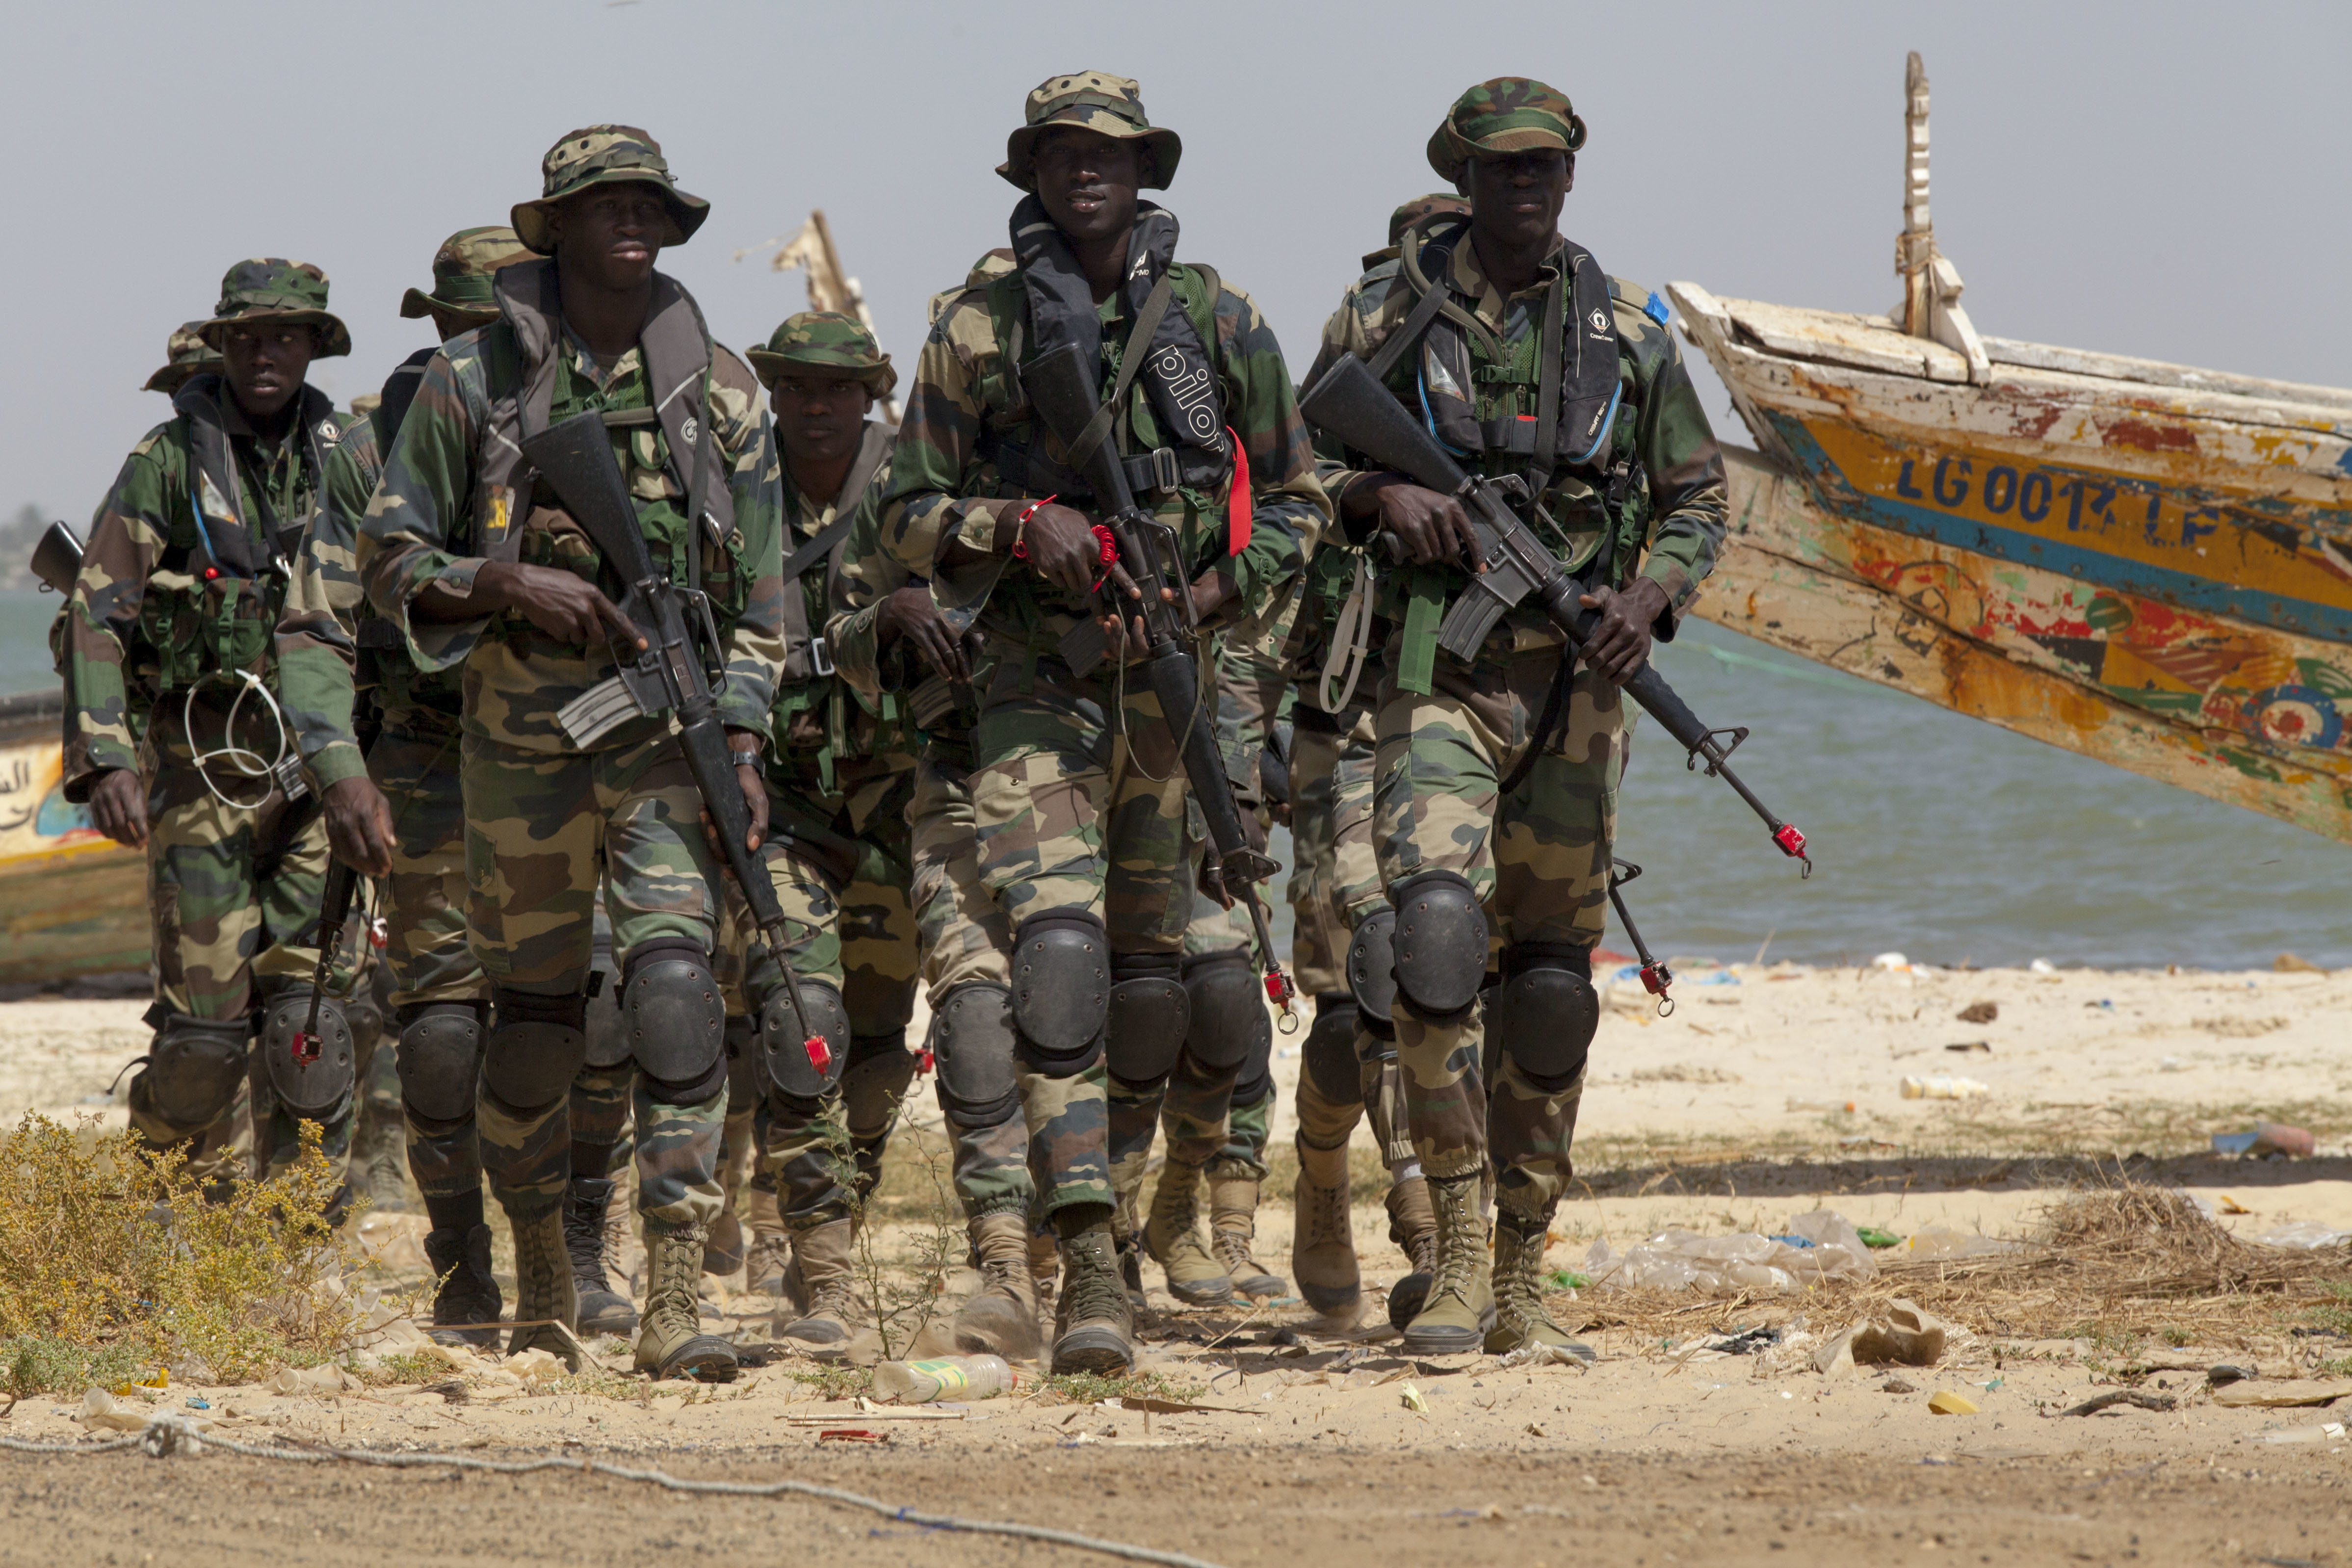 Senegalese Navy Special Operations Forces prepare for a beach landing exercise in Saint Louis, Senegal, Feb. 11, 2016. The beach landings were a part of the multinational exercise Flintlock 2016. More than 1,700 Special Operation Forces personnel from Africa, Europe and North America participated in Flintlock 2016. (U.S. Army Photo by Spc. David M. Shefchuk/Released)